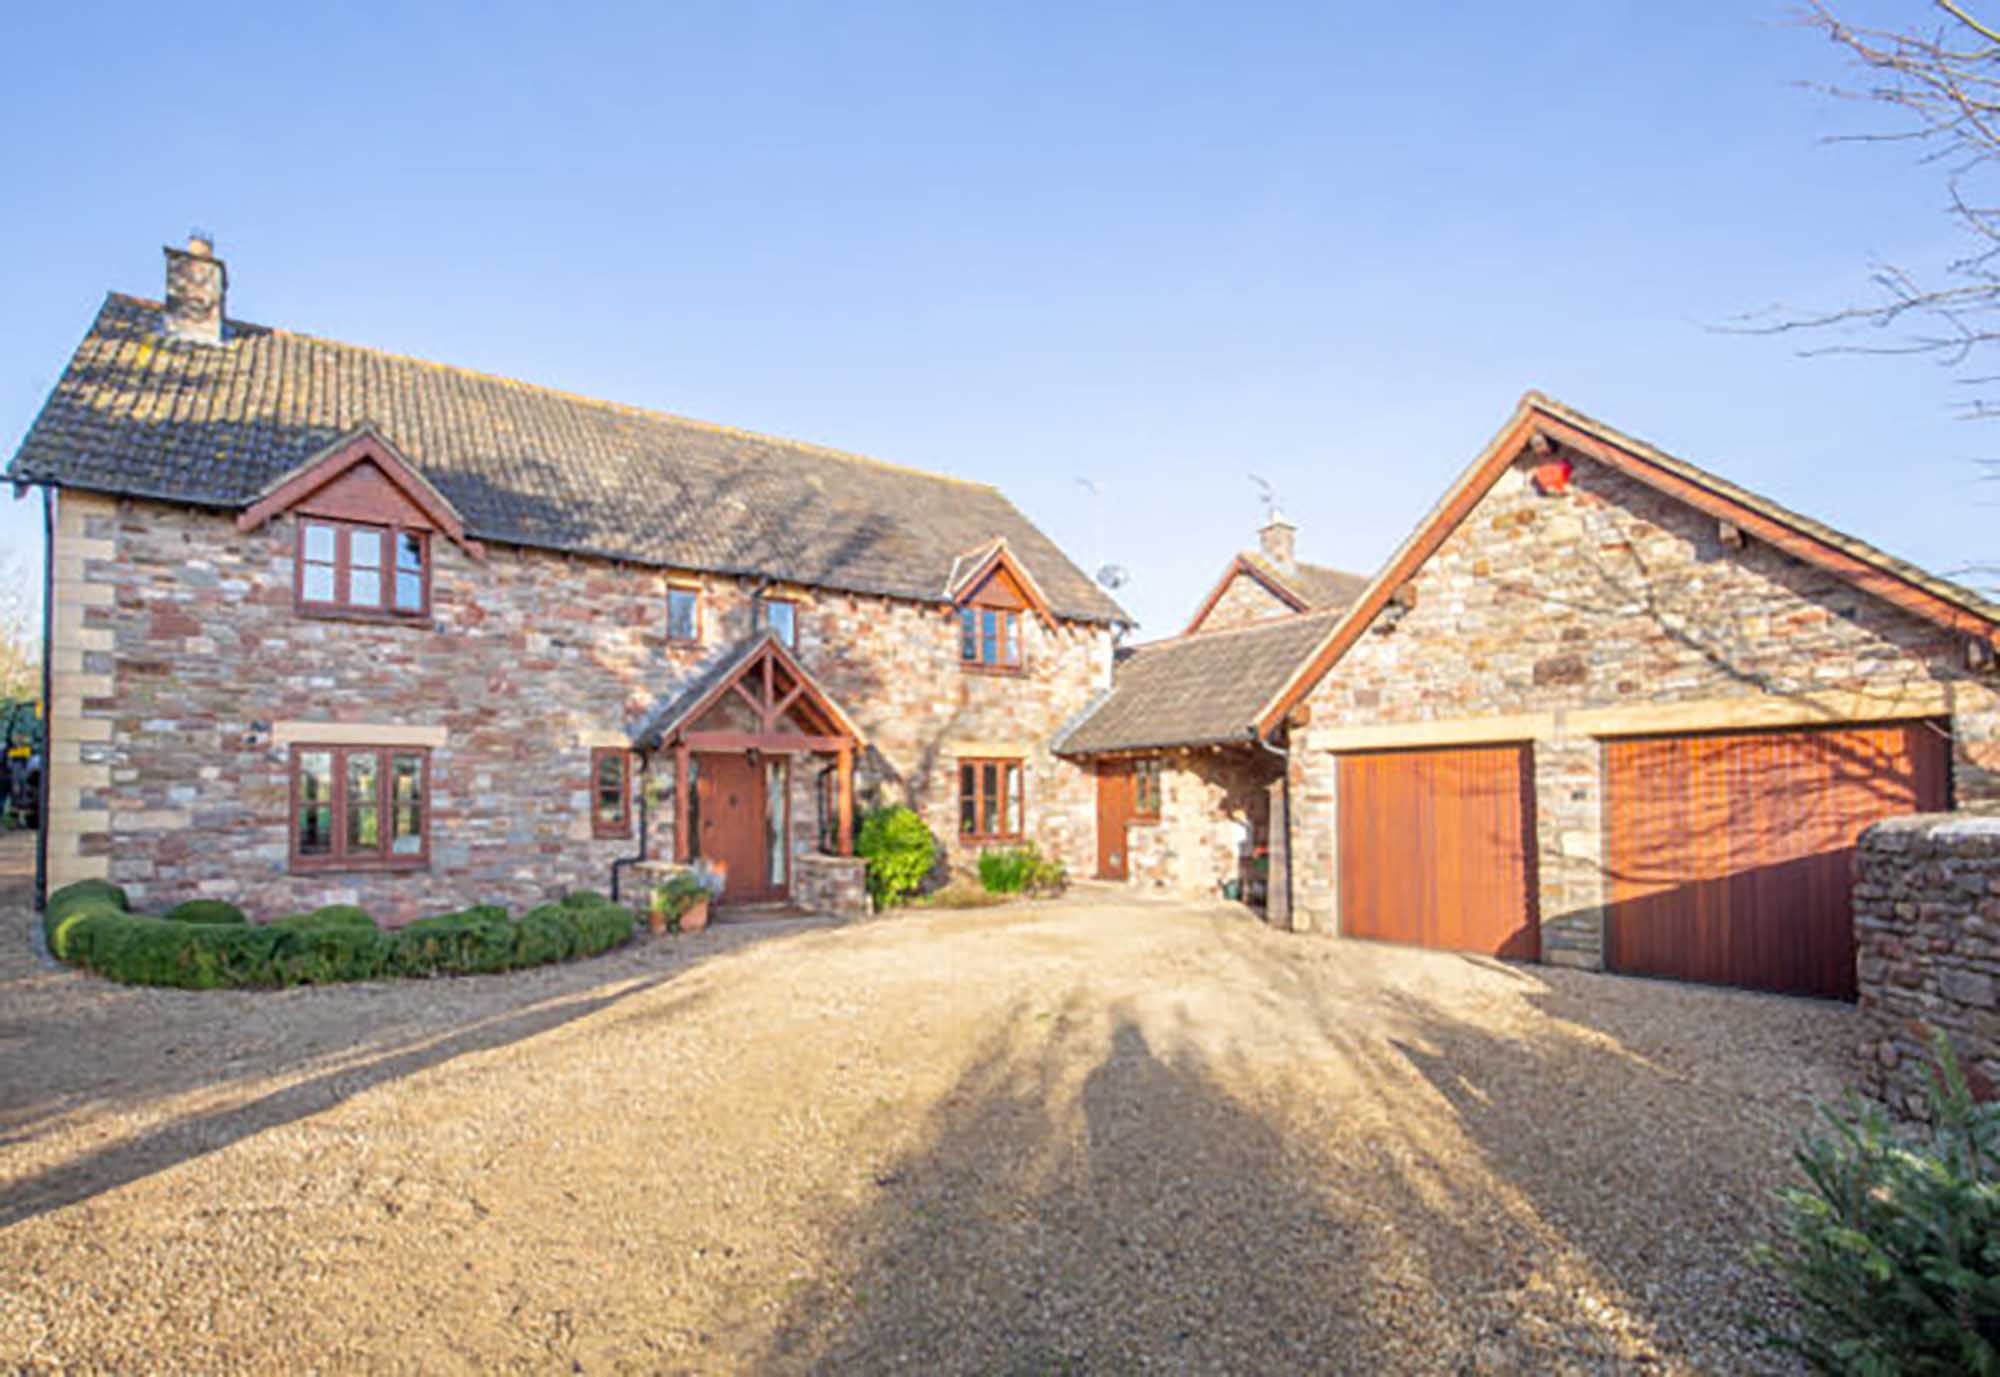 Lovely family house with paddock and stables in central village location